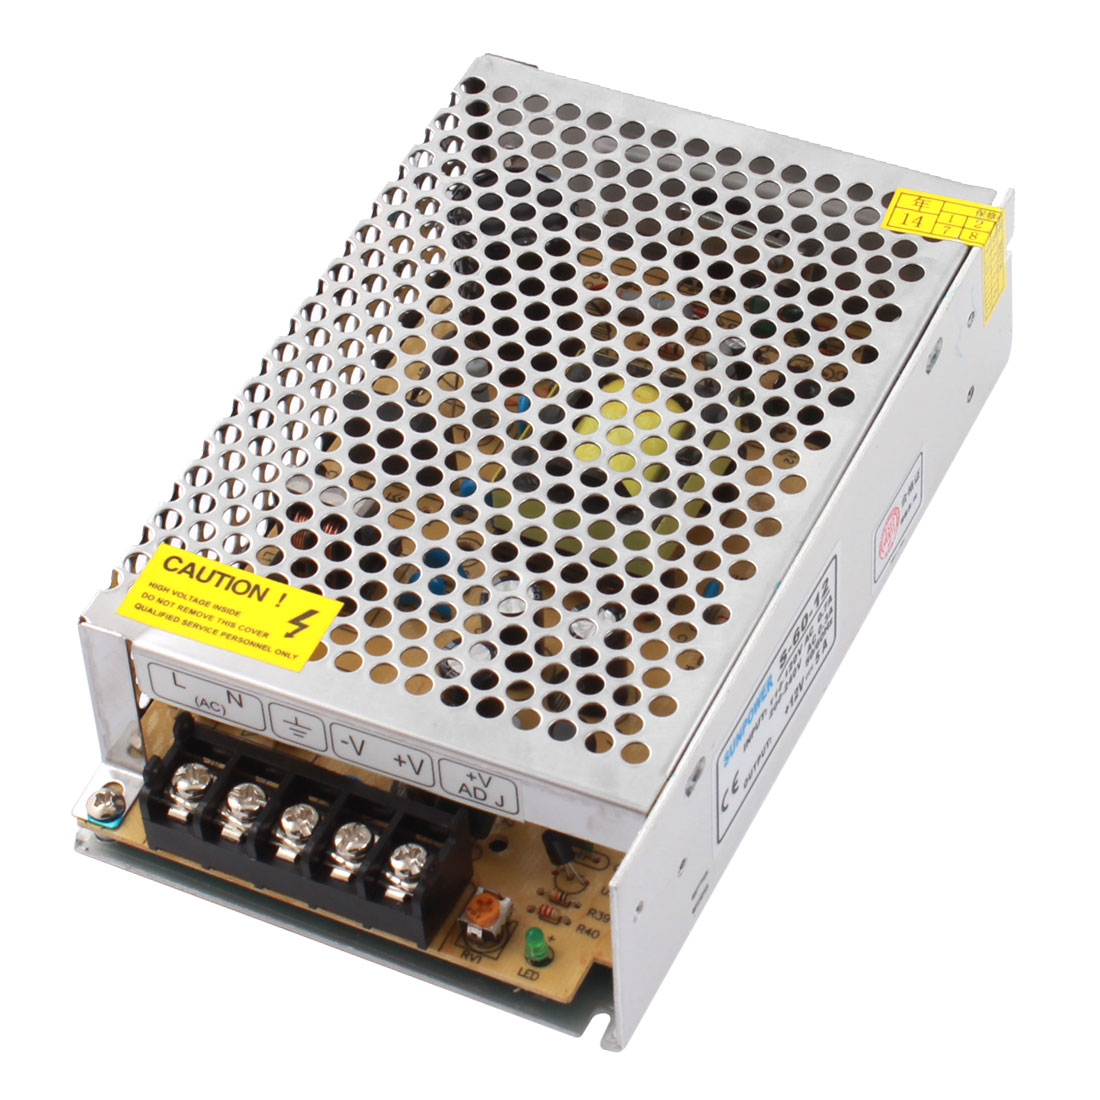 DC 12V 5A 60W Switching Power Supply Driver S-60-12 for LED Strip Light